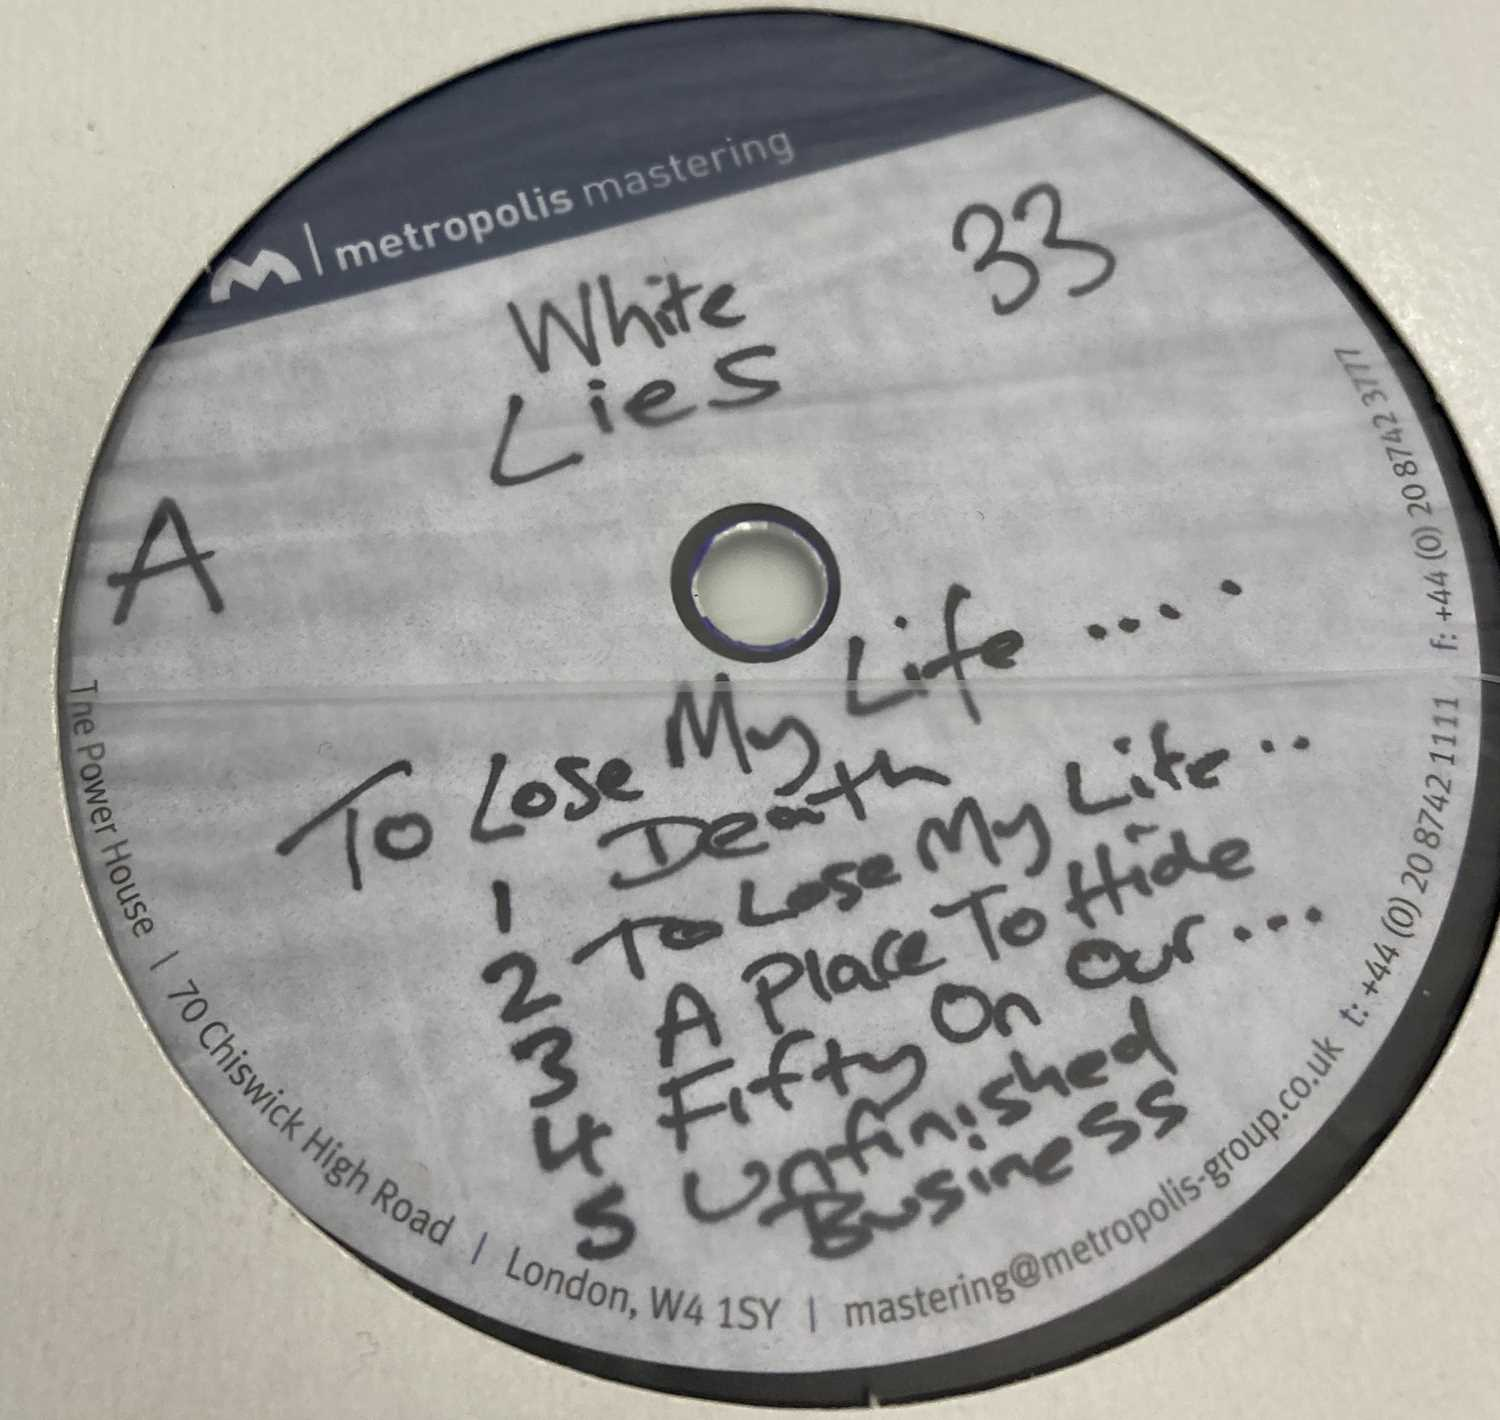 """WHITE LIES - TO LOSE MY LIFE & DEATH - LP/12"""" ACETATE RECORDINGS - Image 2 of 5"""